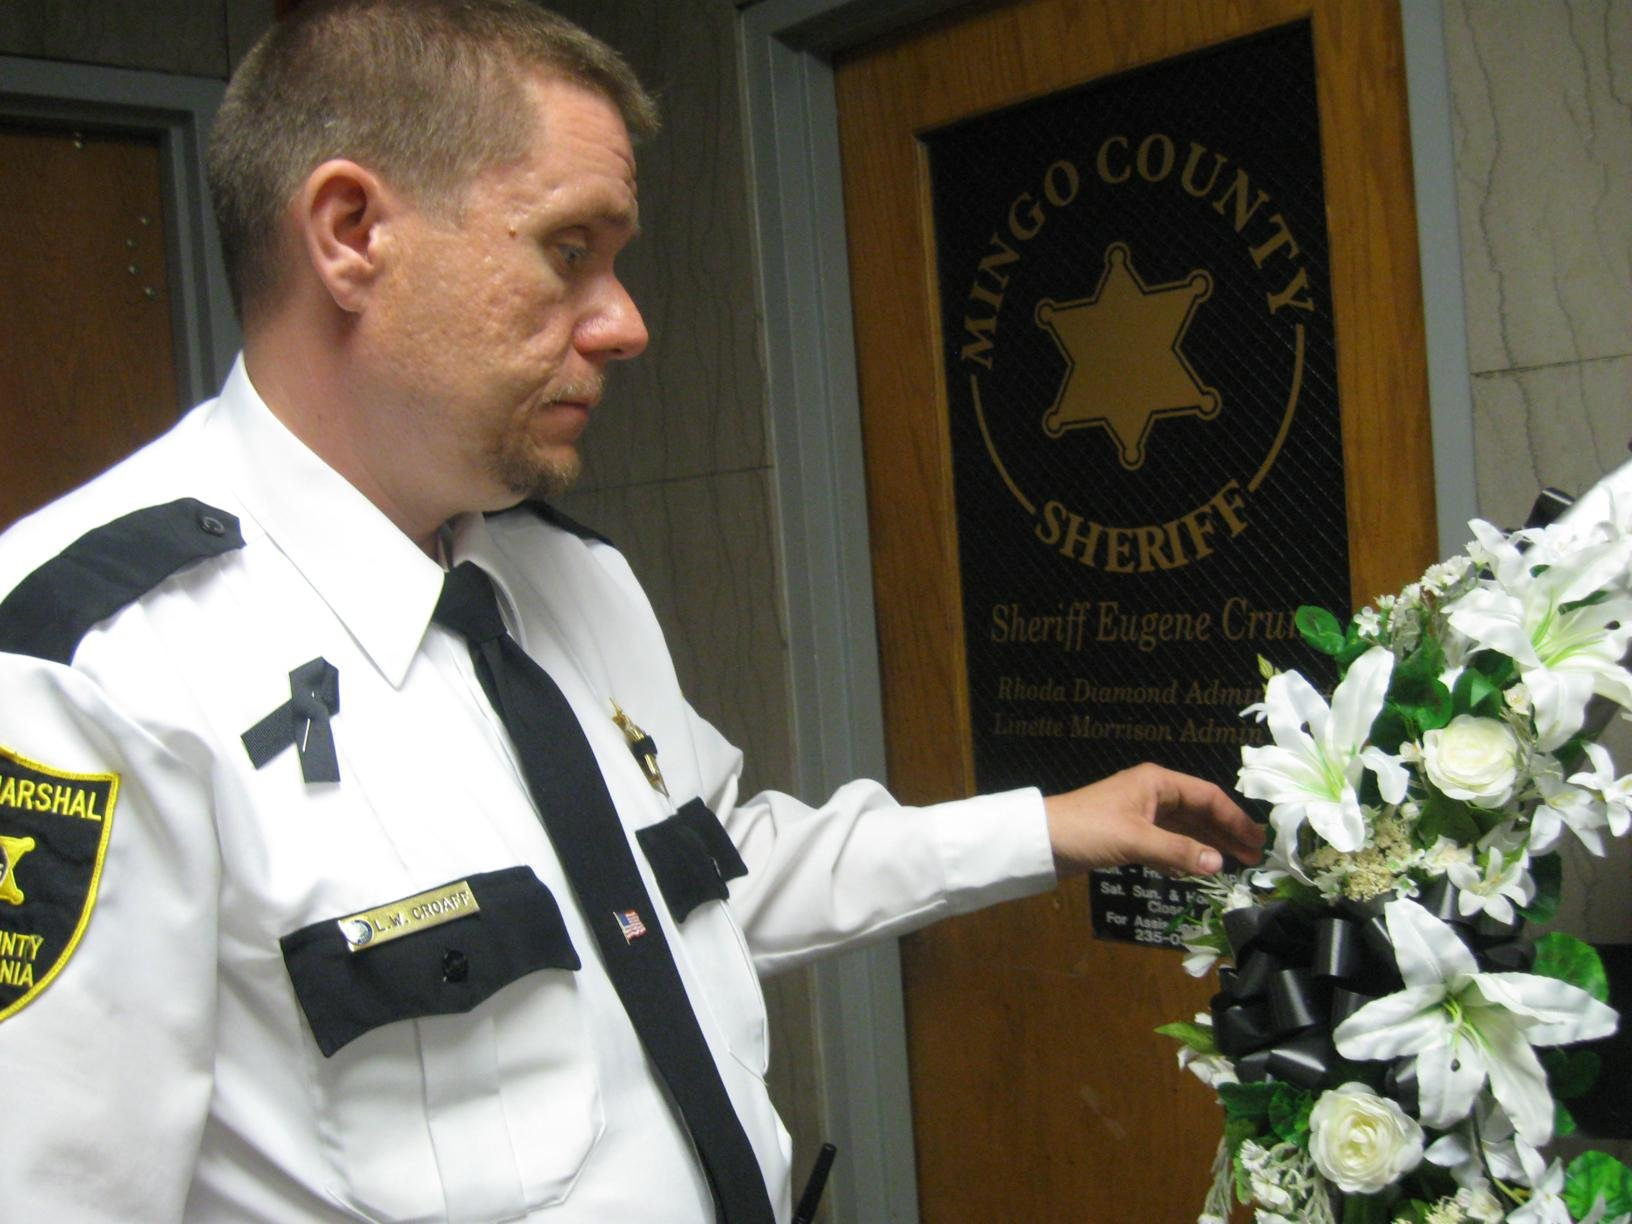 Larry Croaff, a bailiff at the Mingo County courthouse, knew Sheriff Eugene Crum for 20 years.